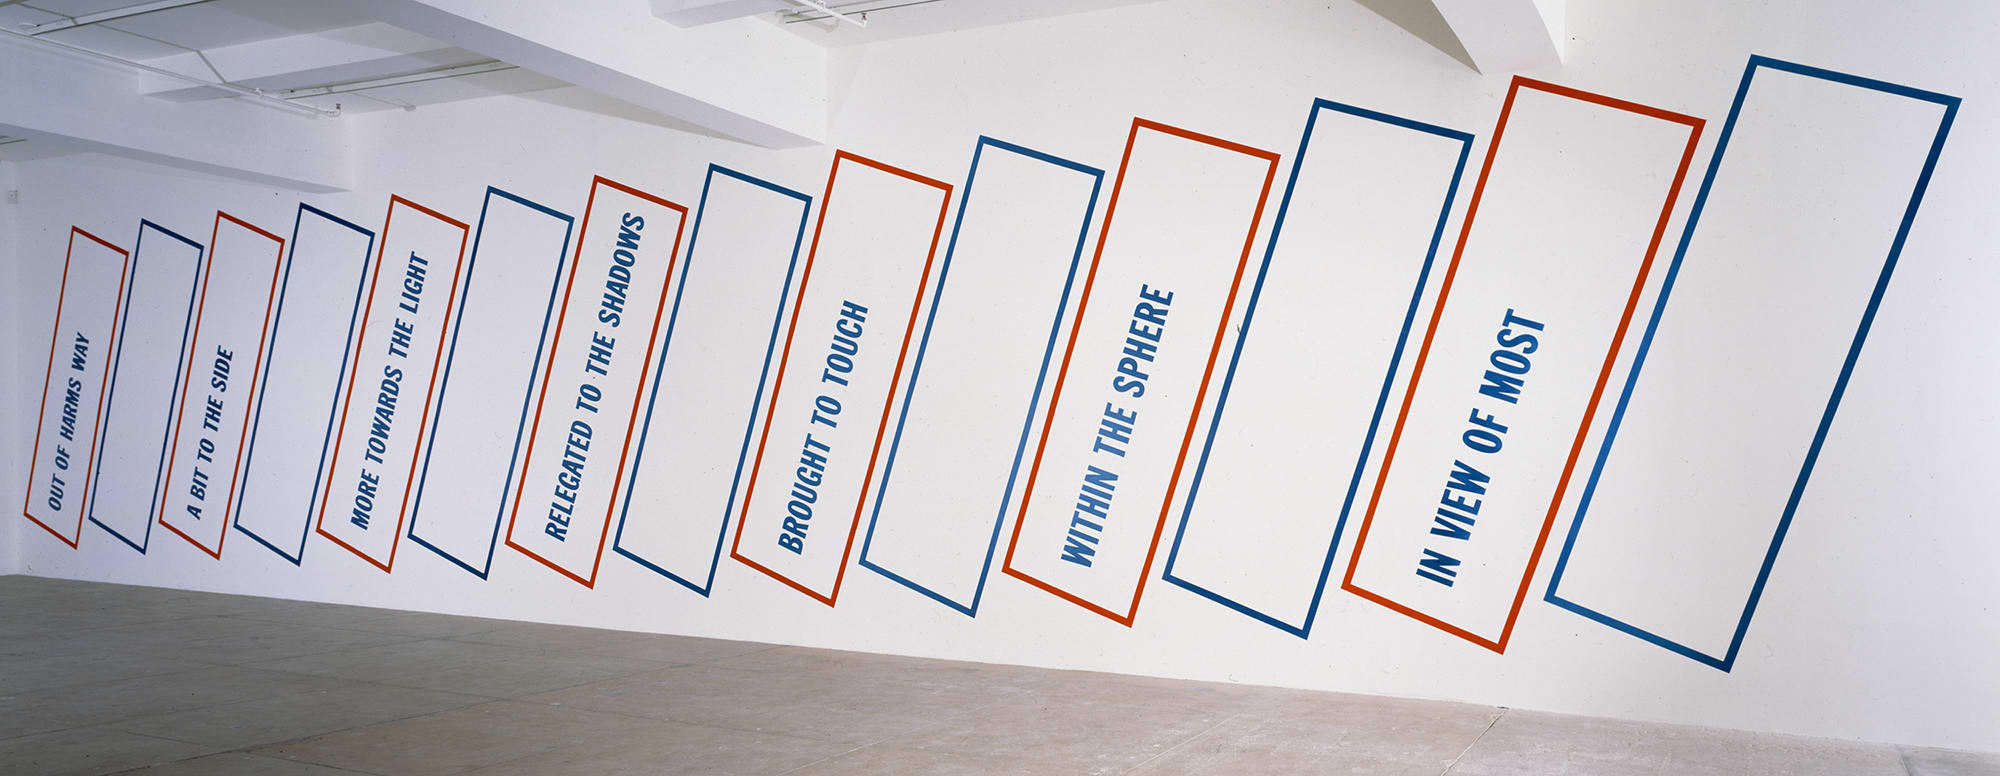 Lawrence Weiner, A BASIC ASSUMPTION - OUT OF HARMS WAY / A BIT TO THE SIDE / MORE TOWARDS THE...